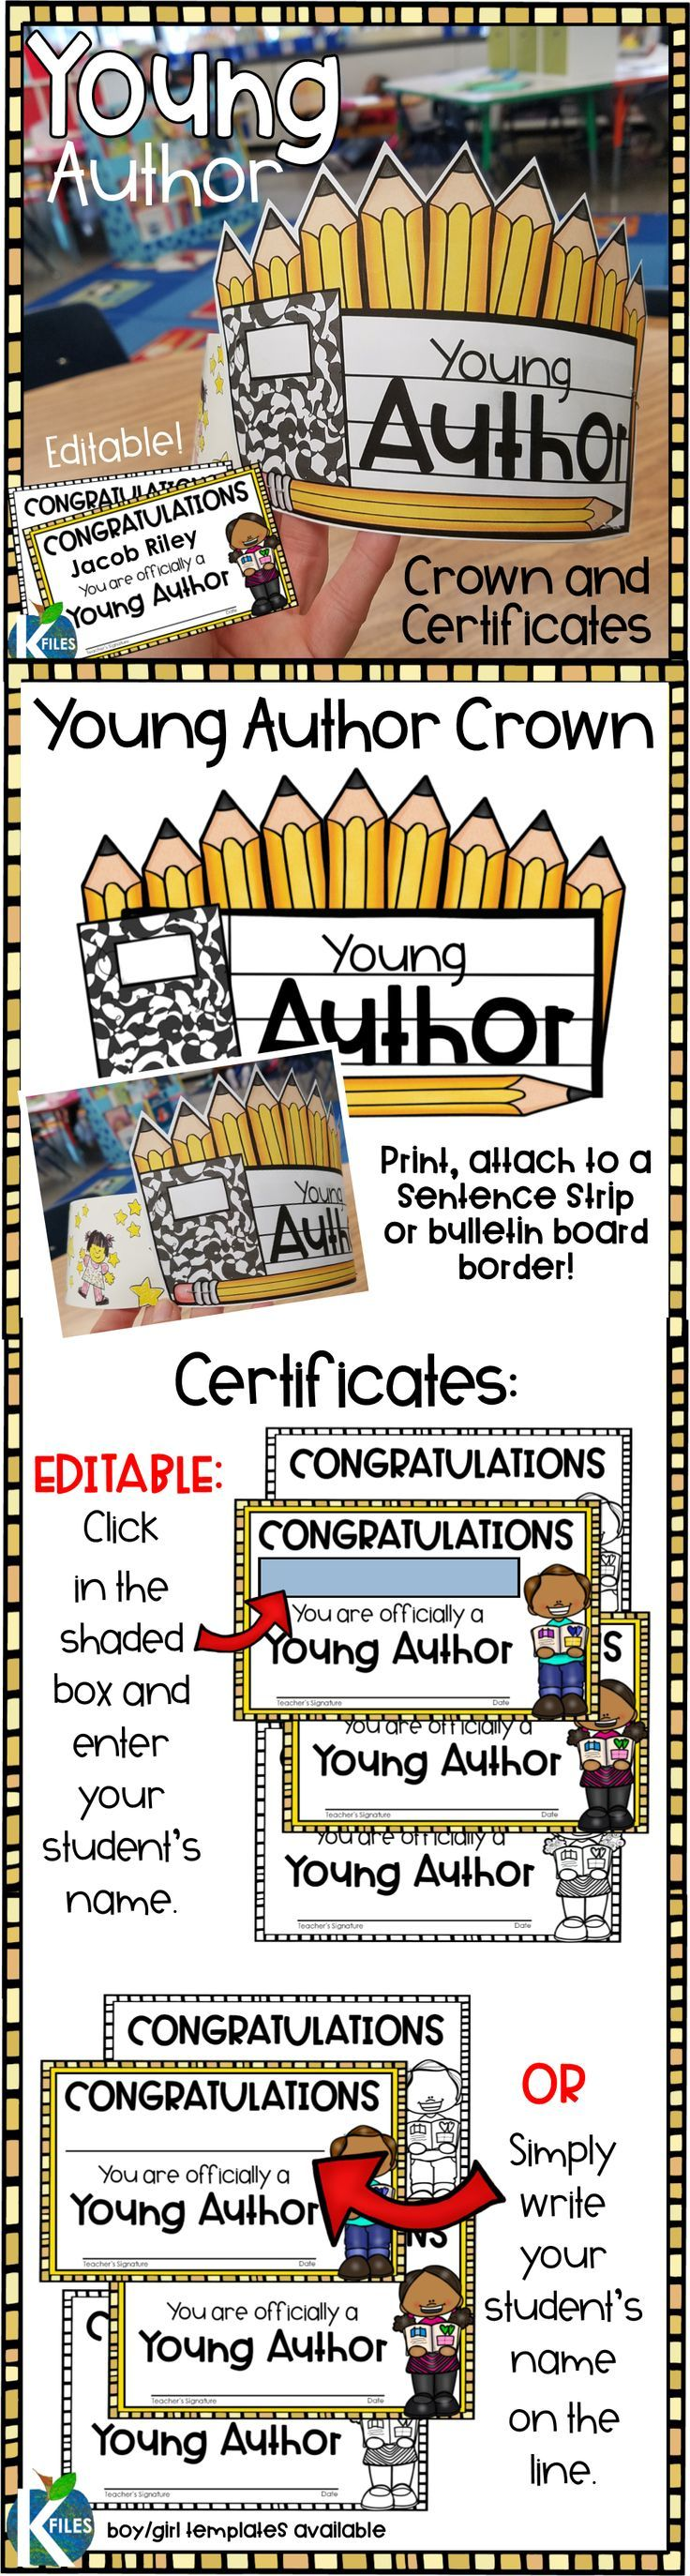 Best 25 certificate ideas on pinterest certificate design a young author crown editable award certificates and book publishing paper to help motivate and aiddatafo Choice Image